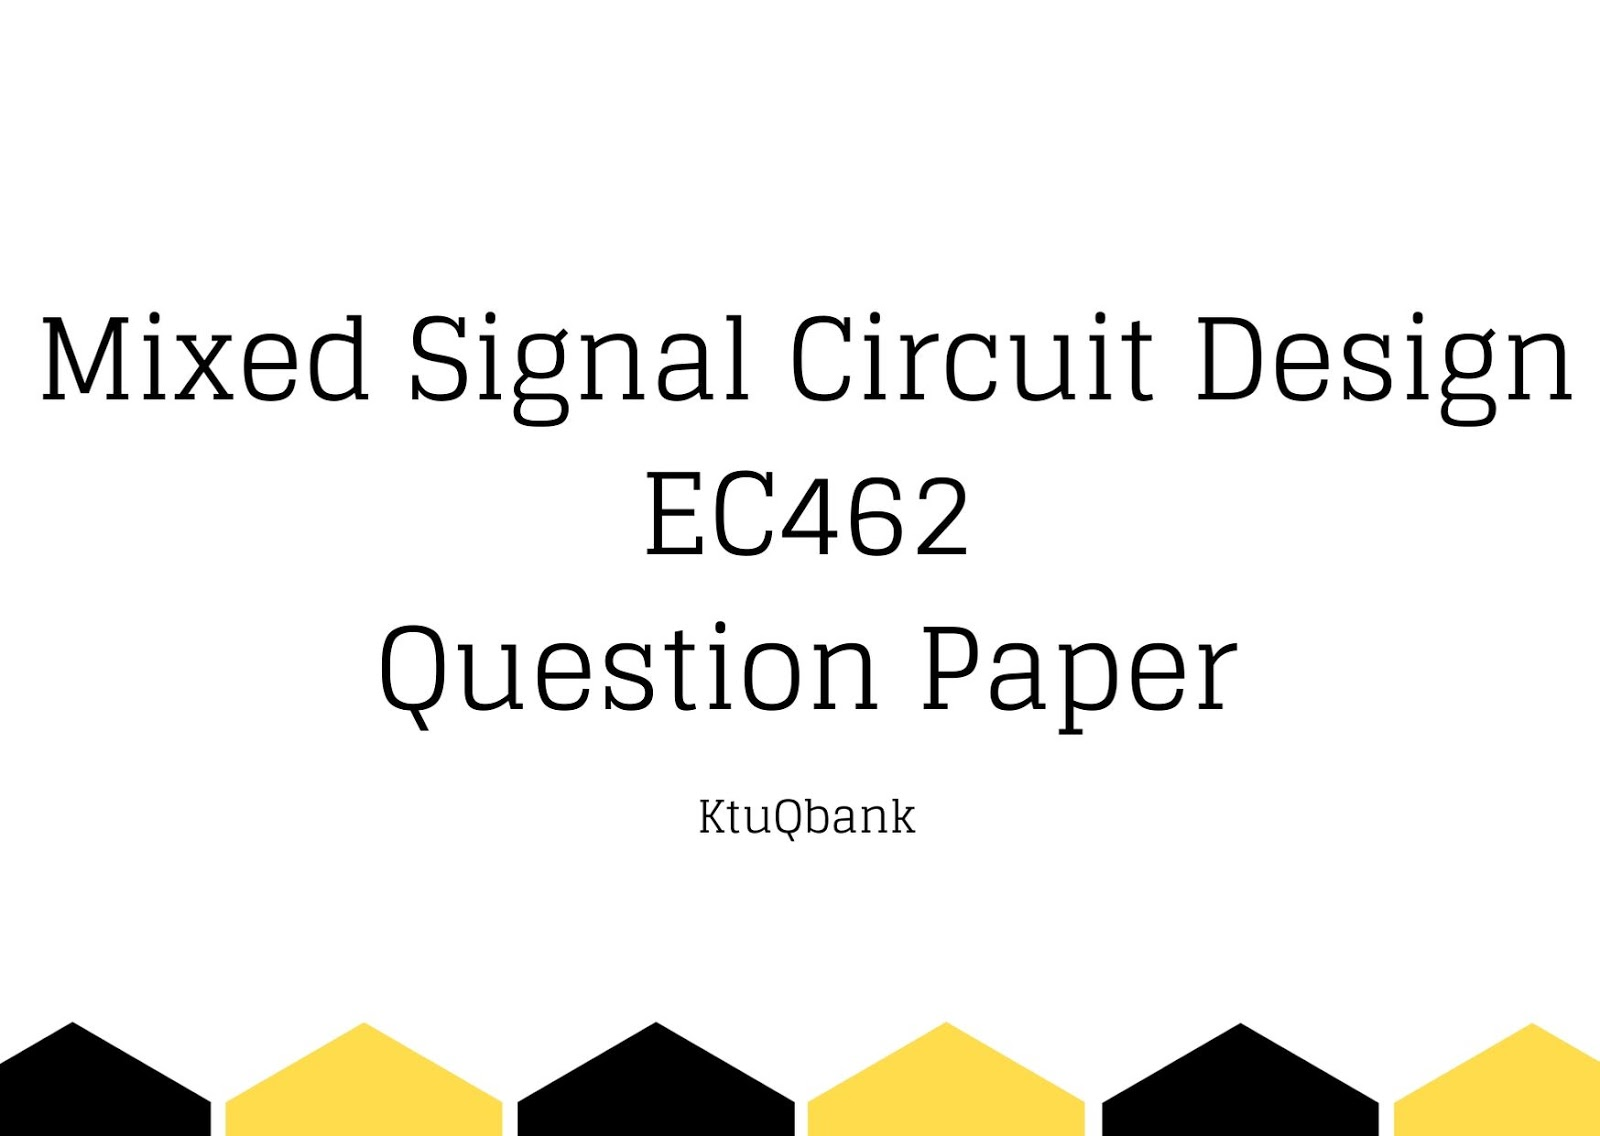 Mixed Signal Circuit Design | EC462 | Question Papers (2015 batch)